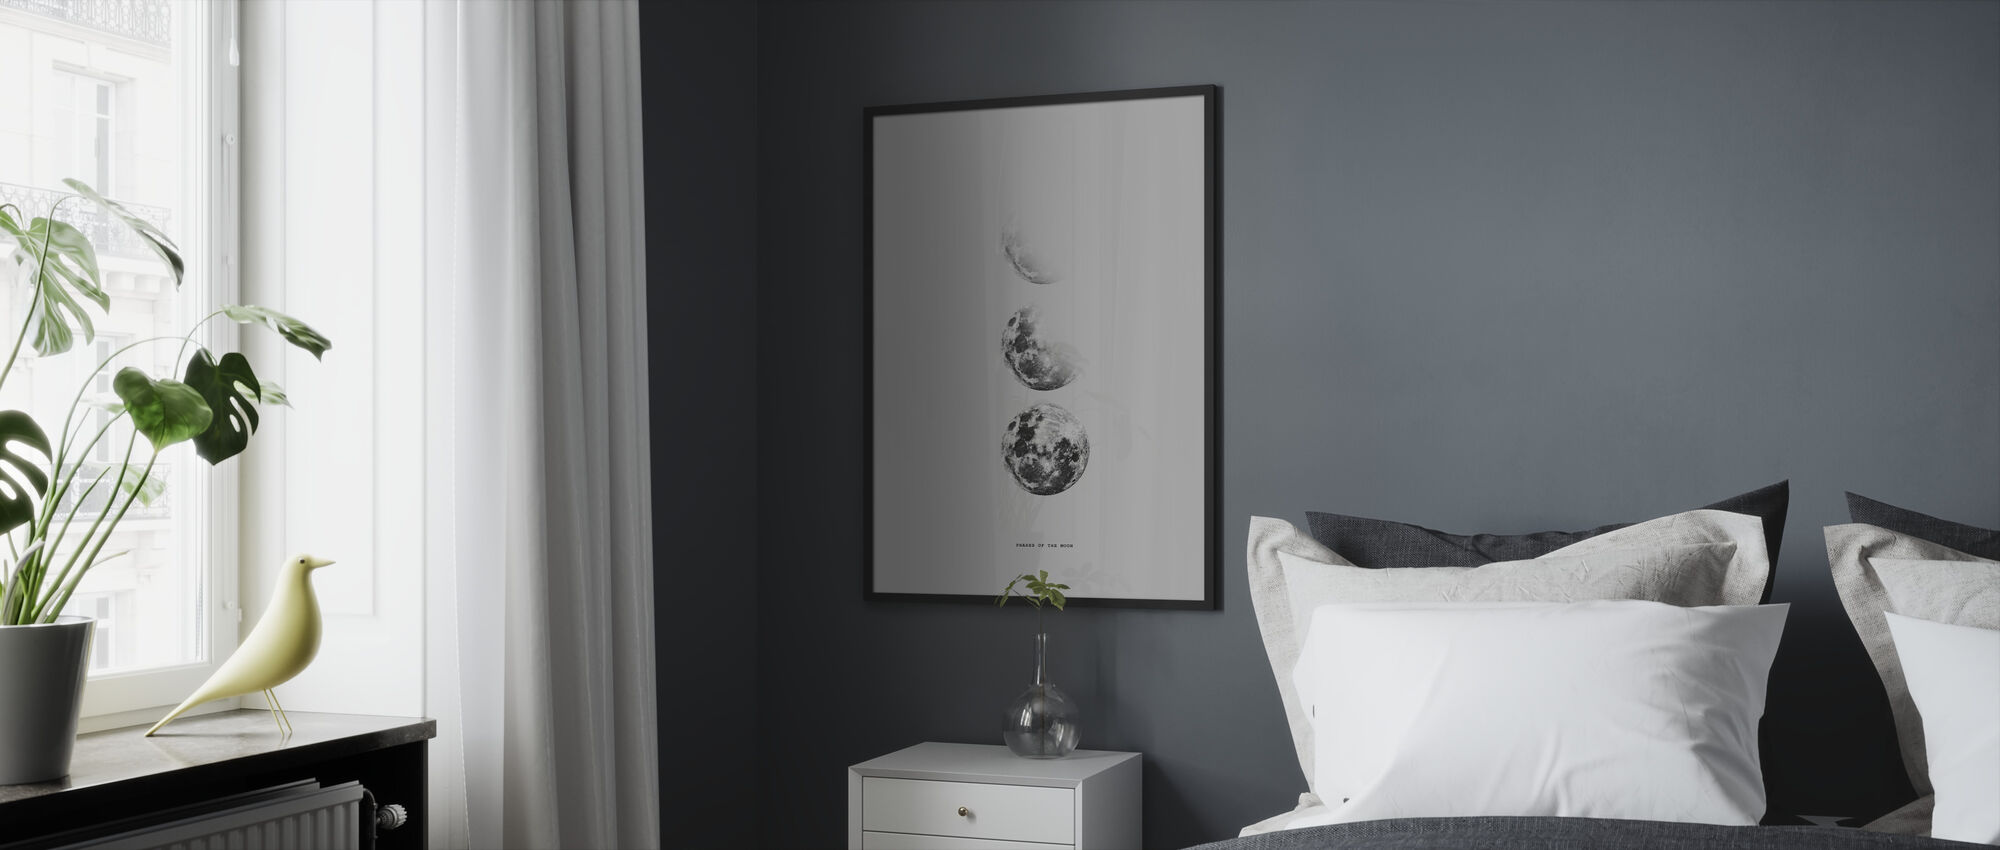 Phases of the Moon - Framed print - Bedroom